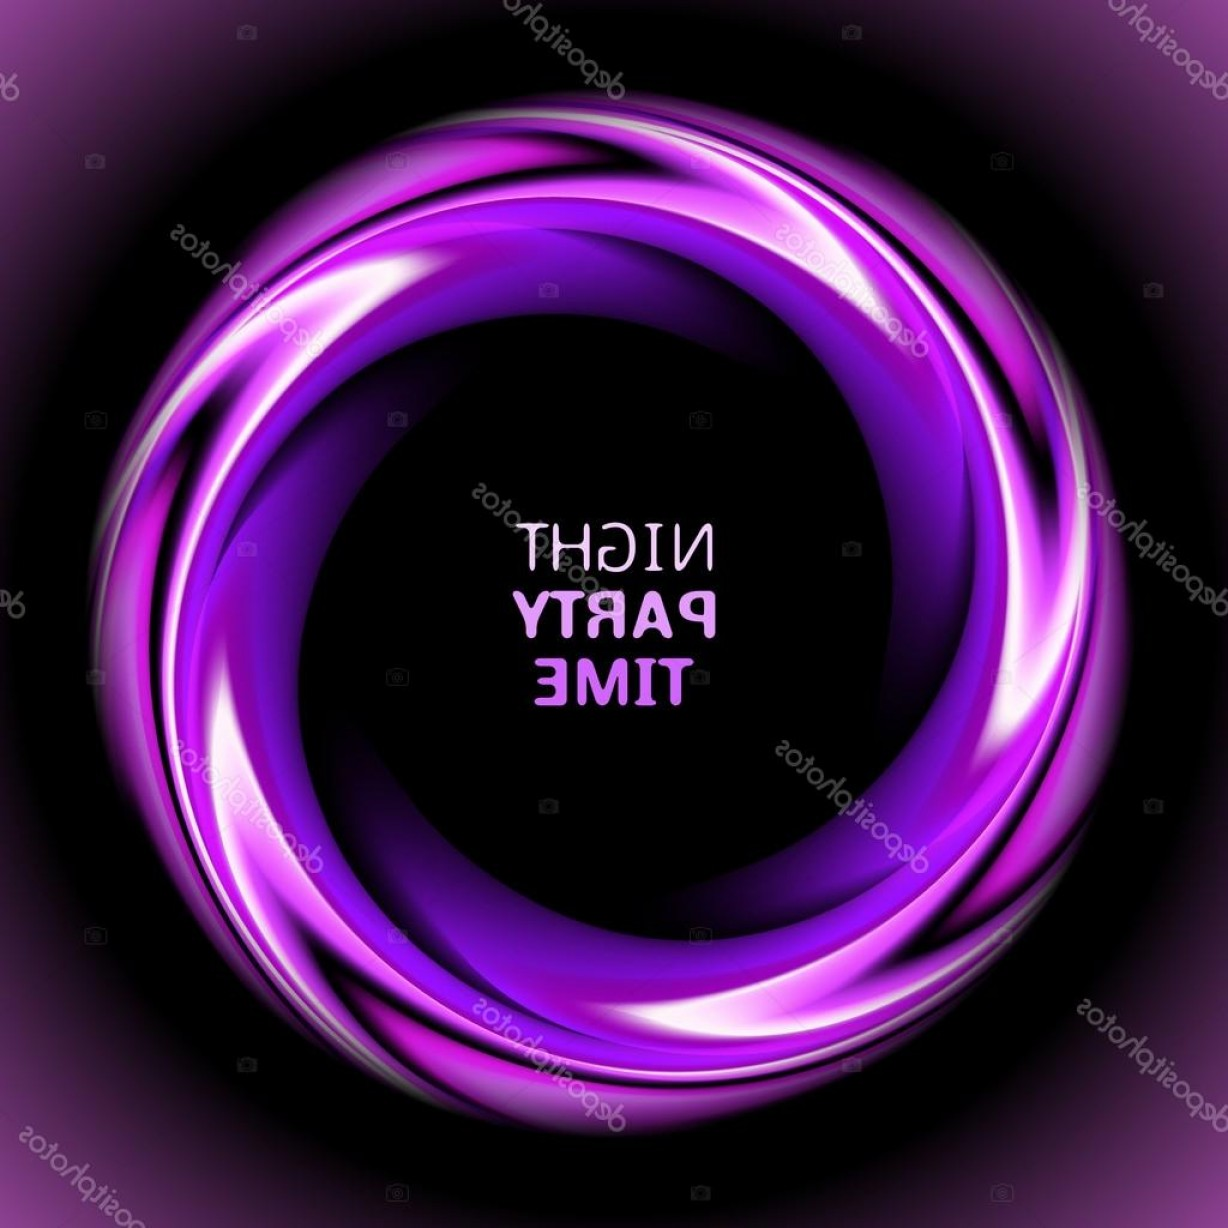 Violet Swirl Design Vector: Stock Illustration Abstract Light Purple Swirl Circle